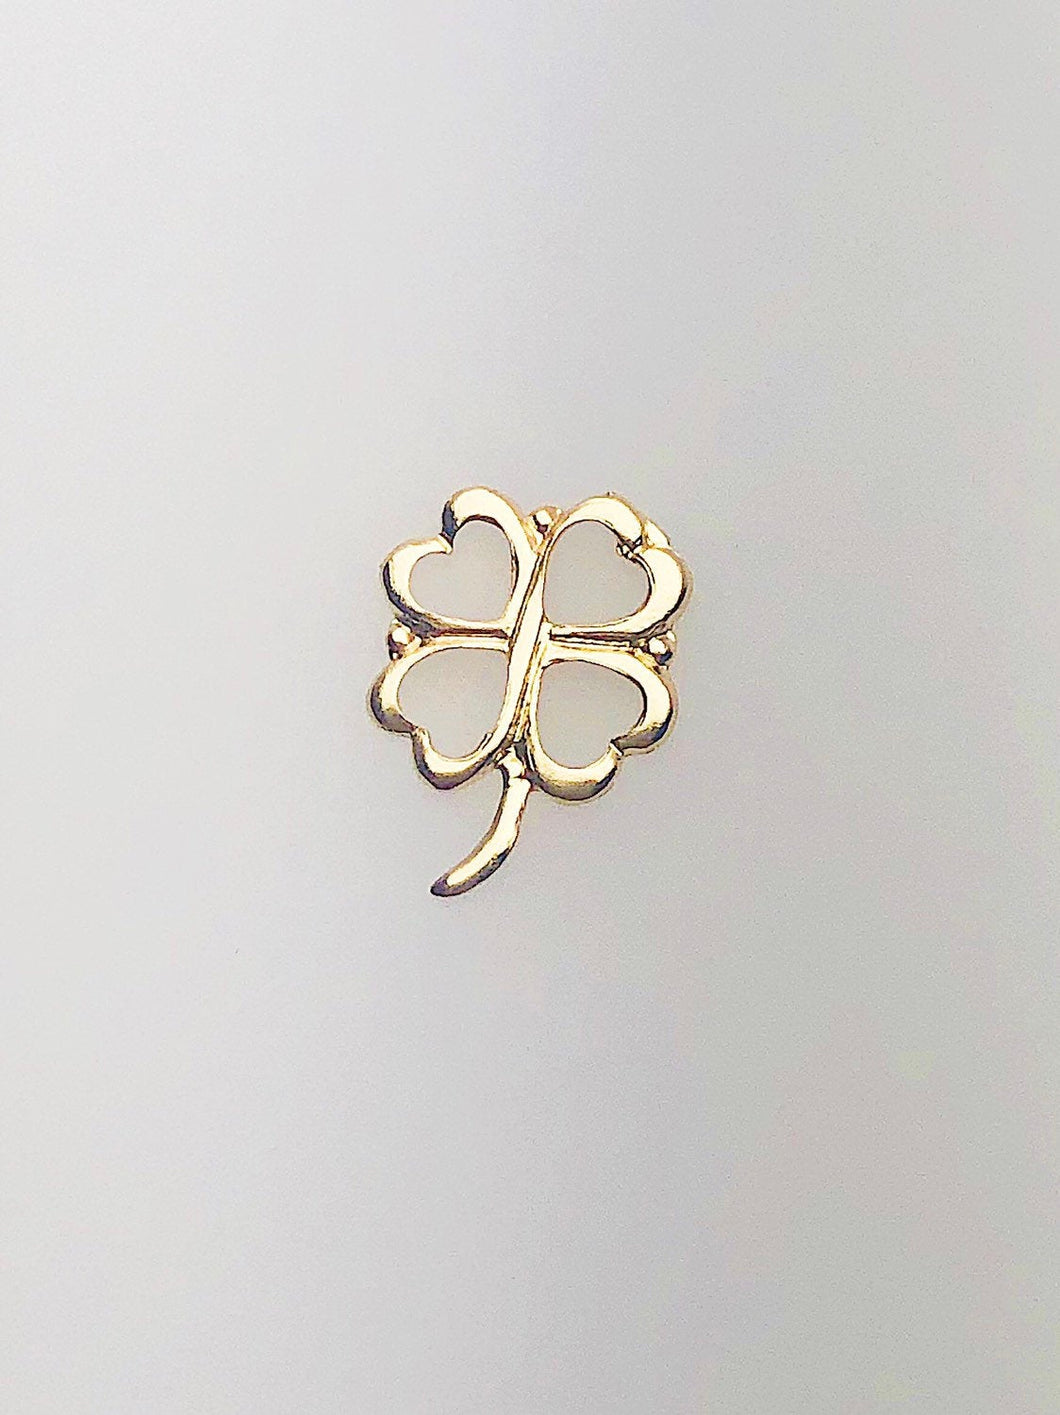 14K Gold Fill Four Leaf Clover Charm, 7.7x10.1mm, Made in USA - 488